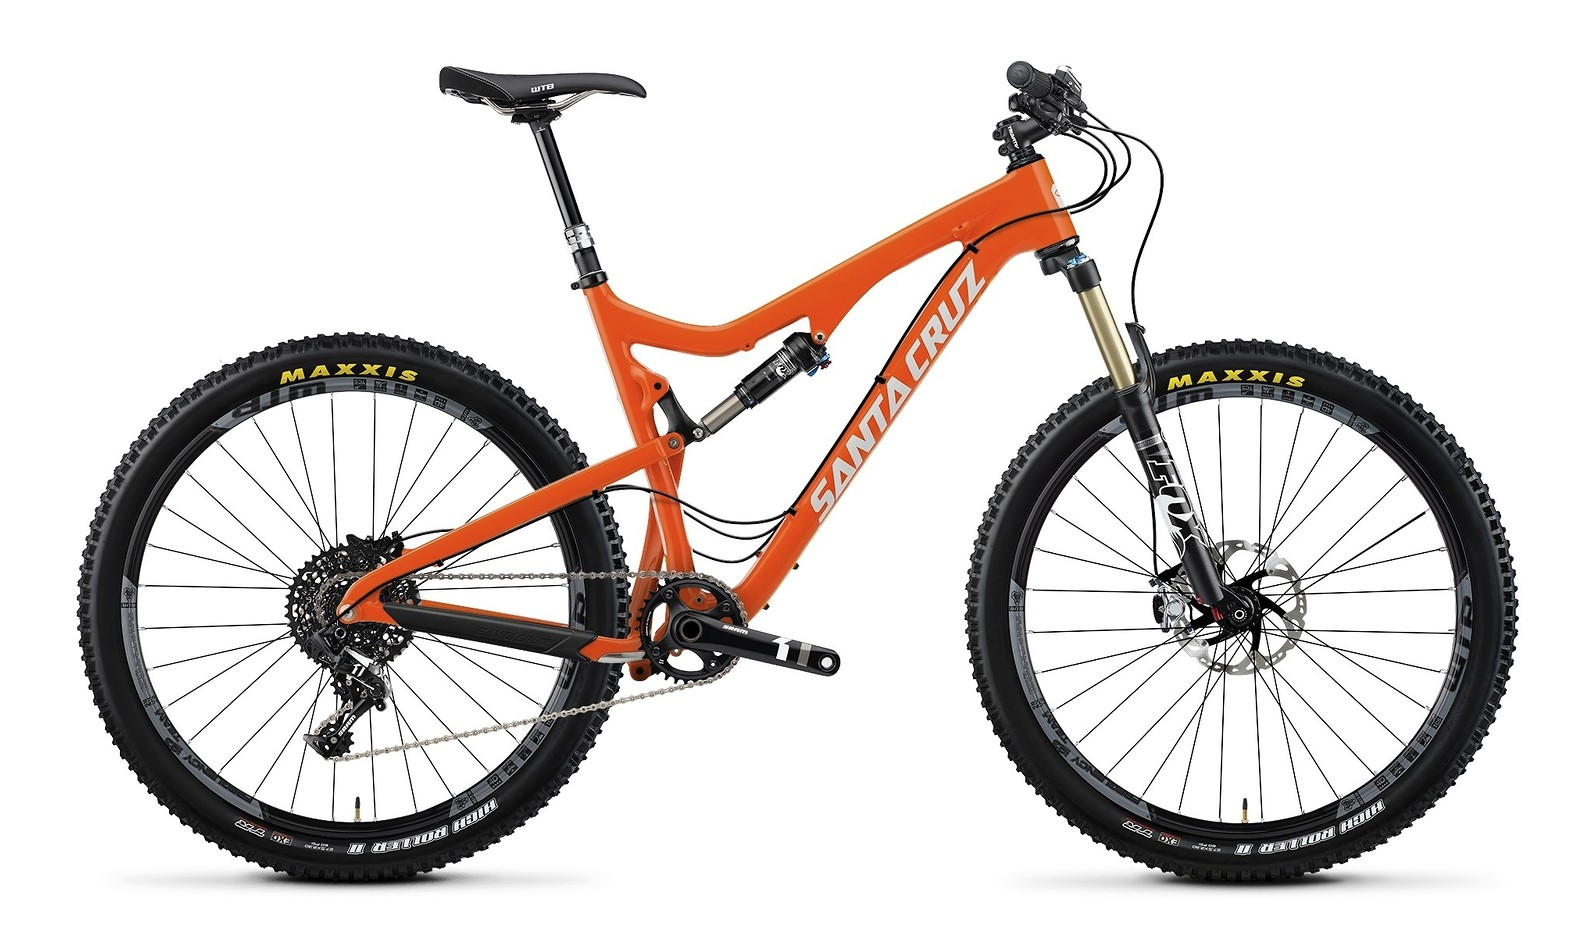 2014 Santa Cruz 5010 Carbon X0-1 AM 27.5 Bike 2014 Santa Cruz 5010 Carbon X0-1 AM 27.5 - orange